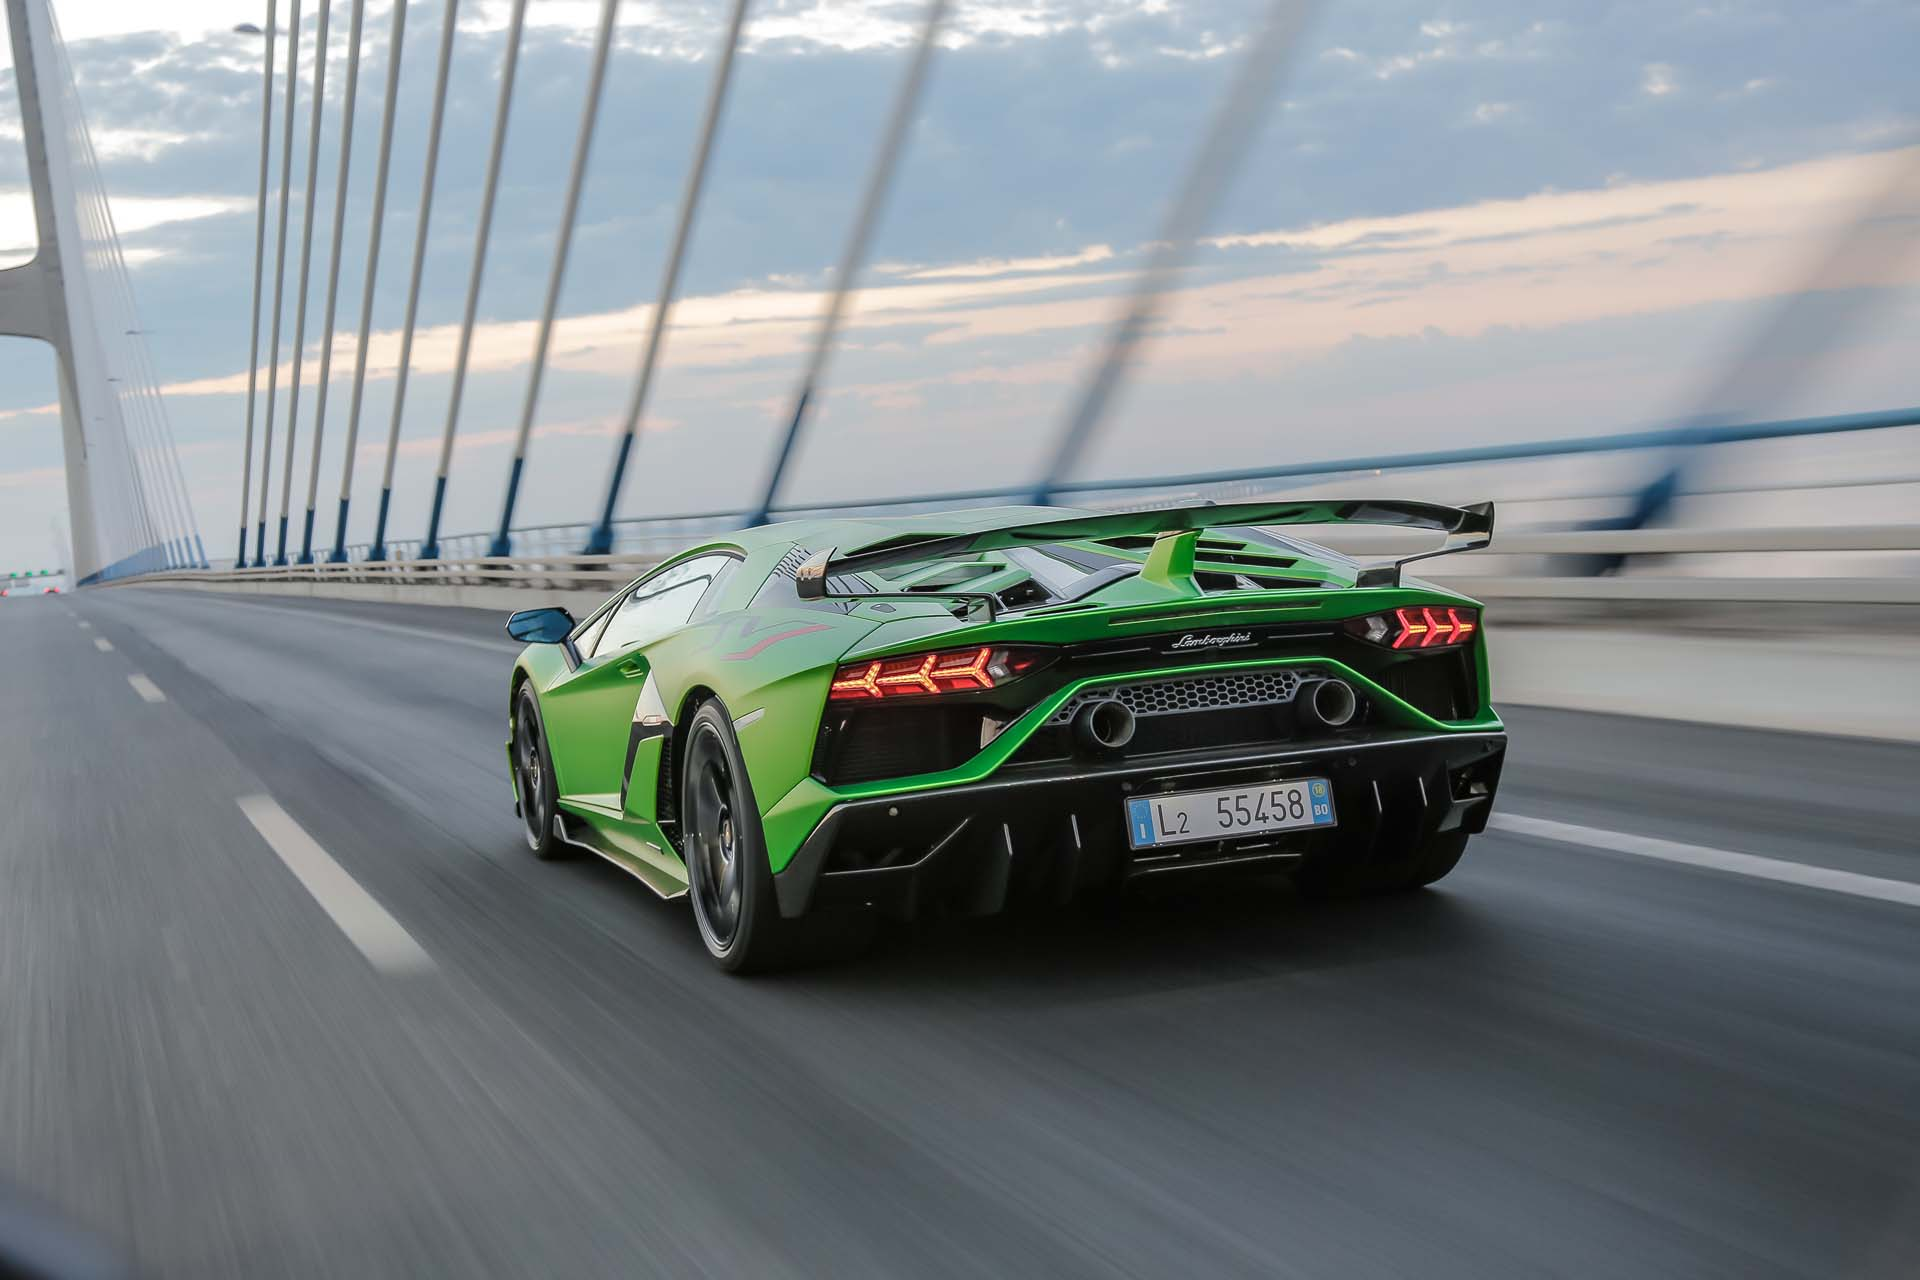 2019 Lamborghini Aventador SVJ Rear Three-Quarter Wallpapers #48 of 241